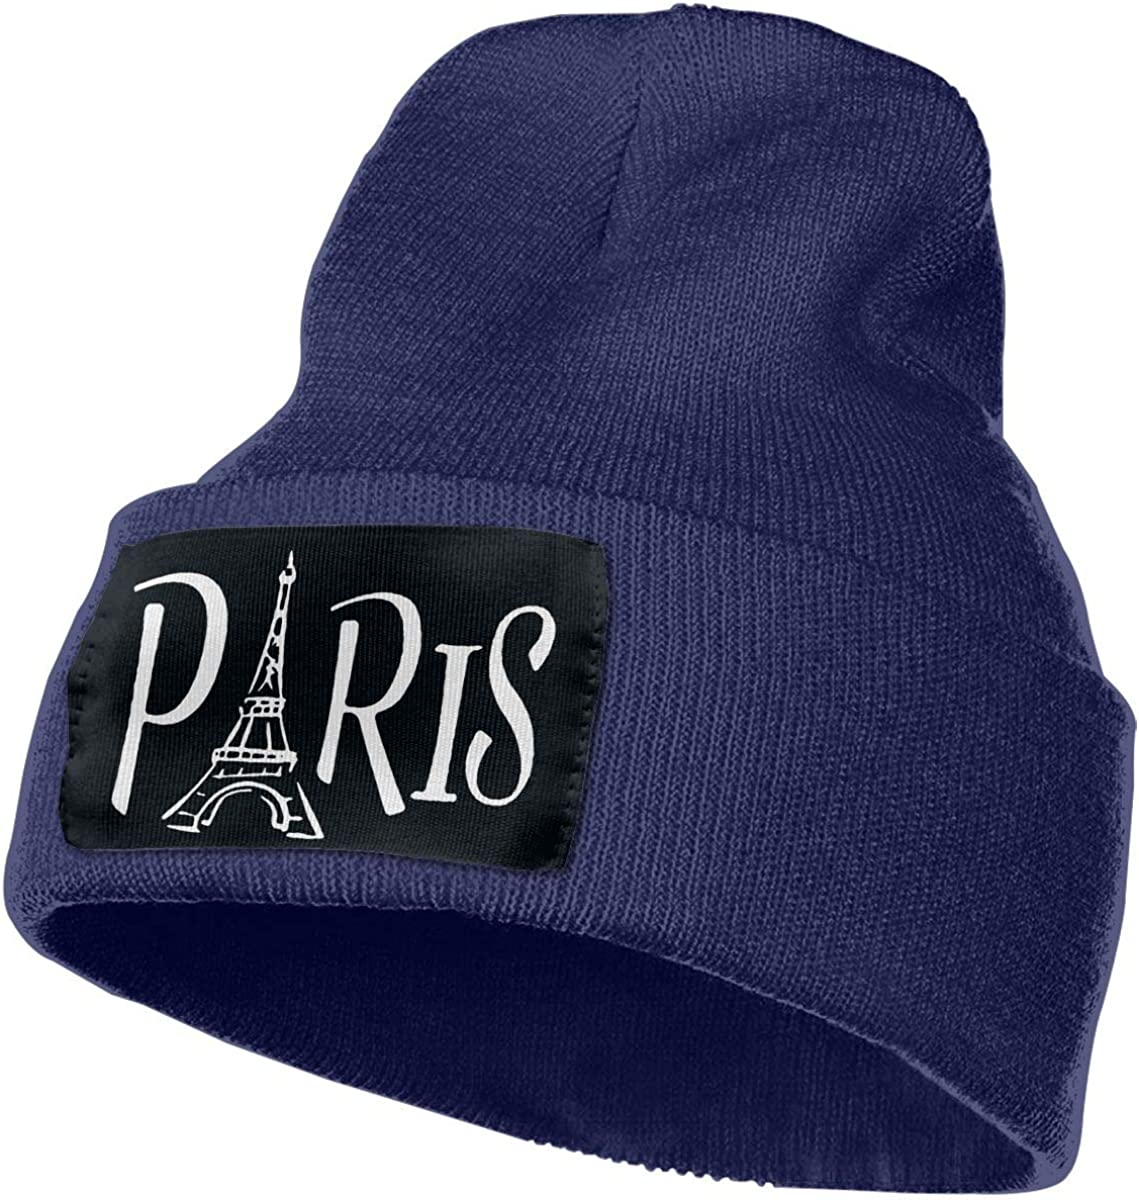 Paris Eiffel Tower Winter Warm Hats,Knit Slouchy Thick Skull Cap Black